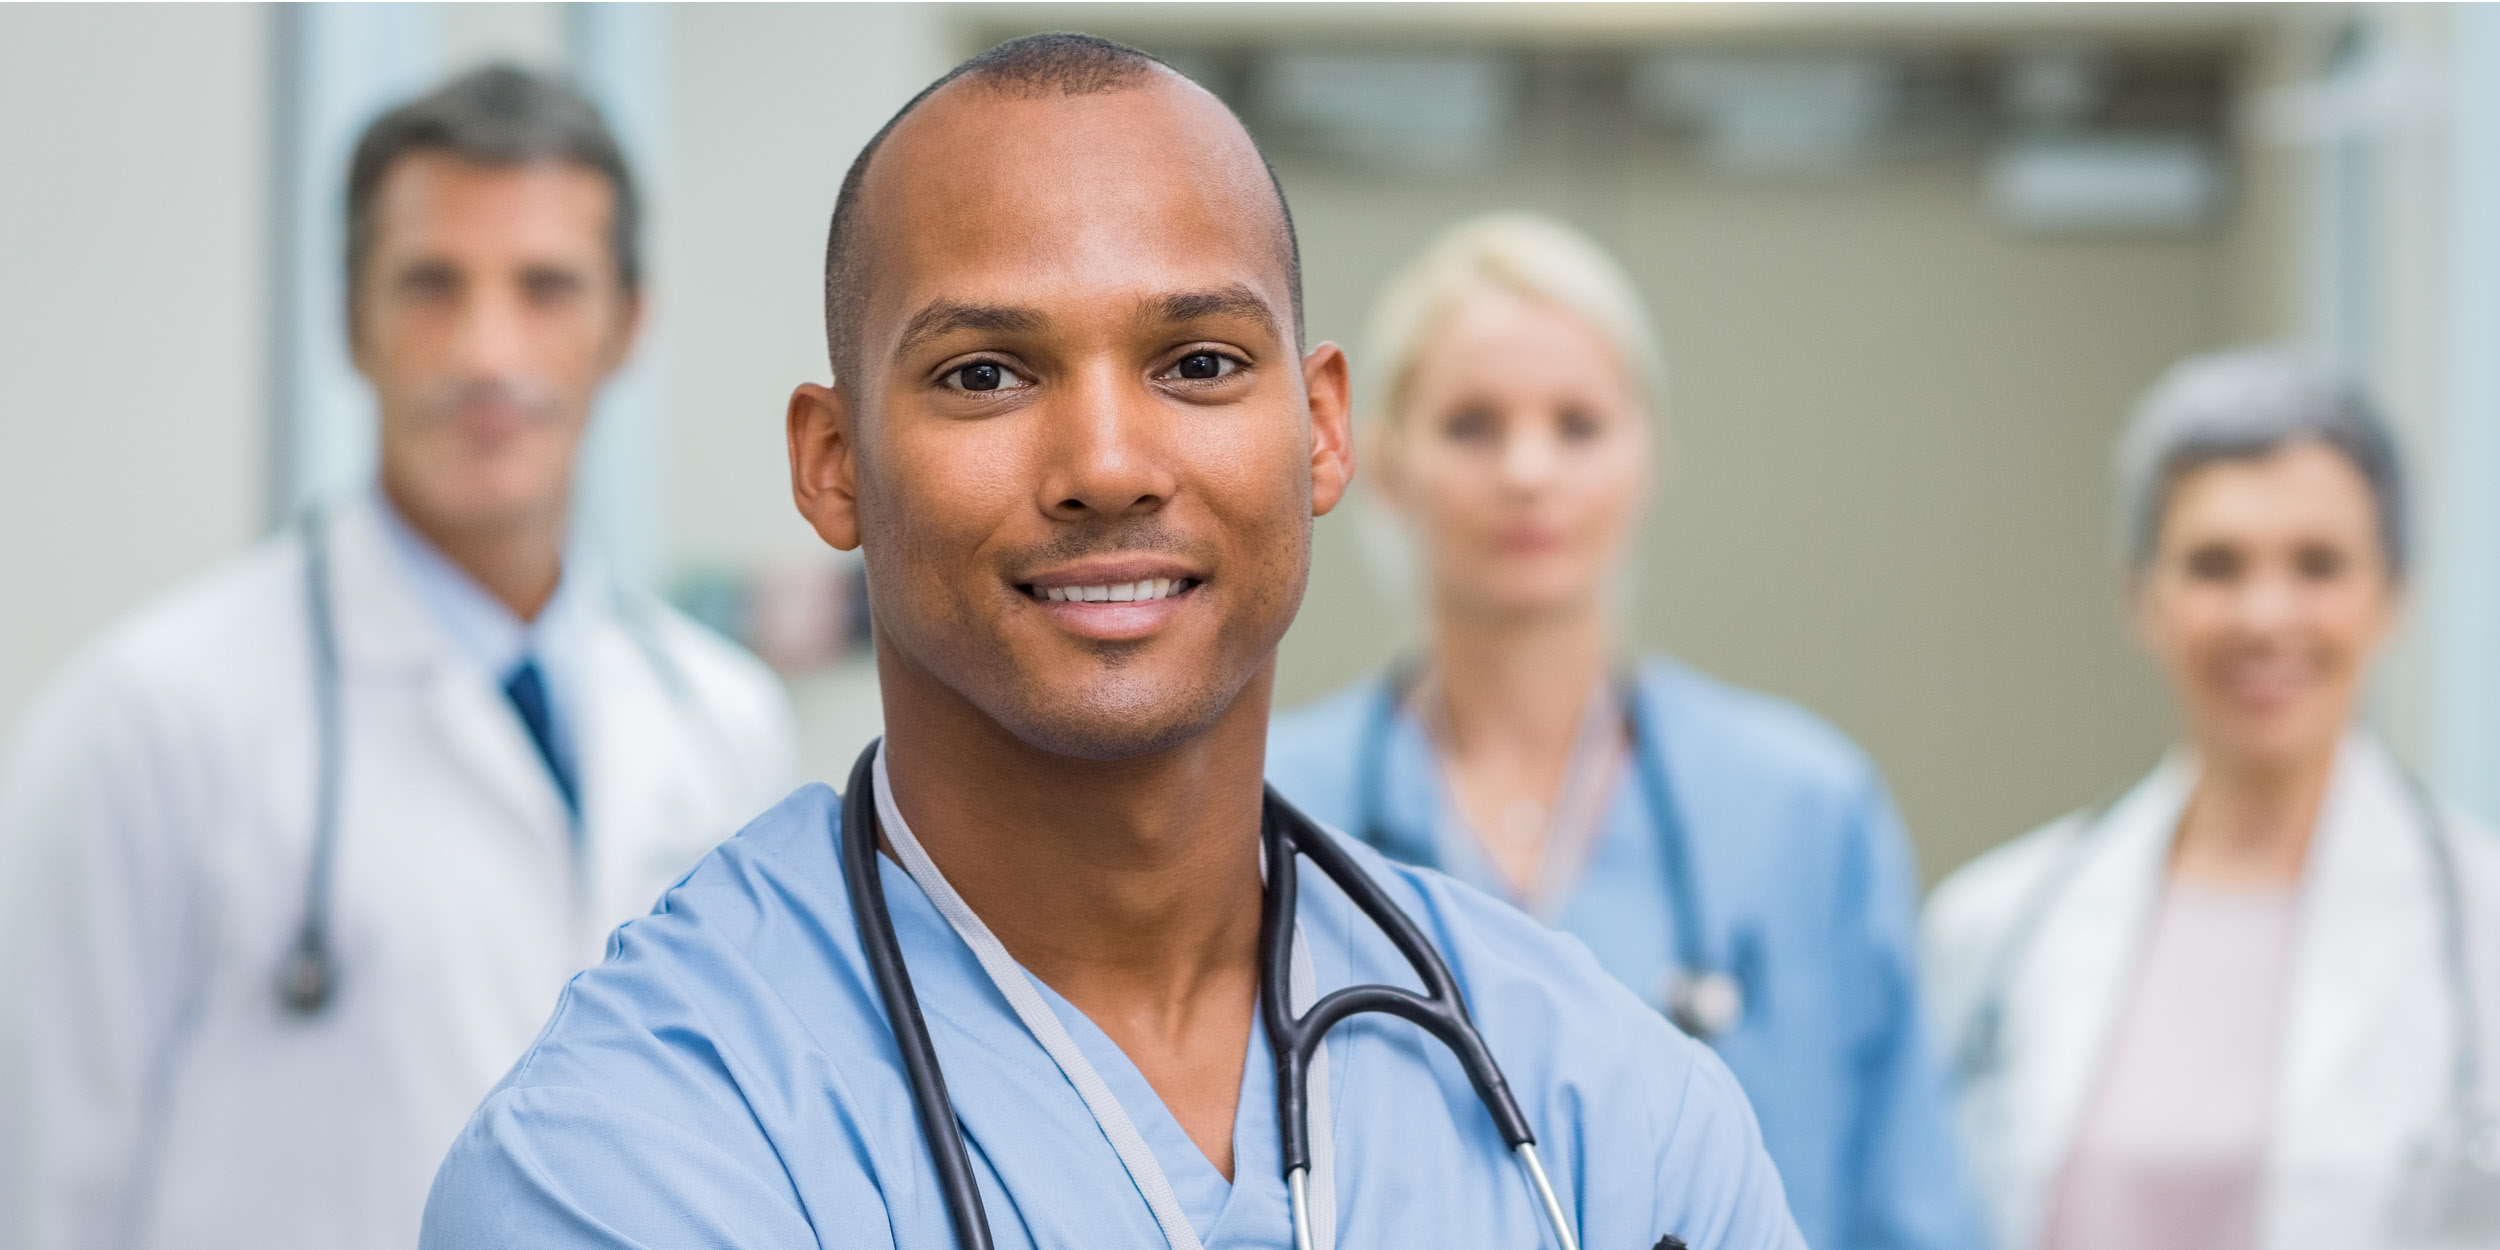 Male Nursing Student with peers in background